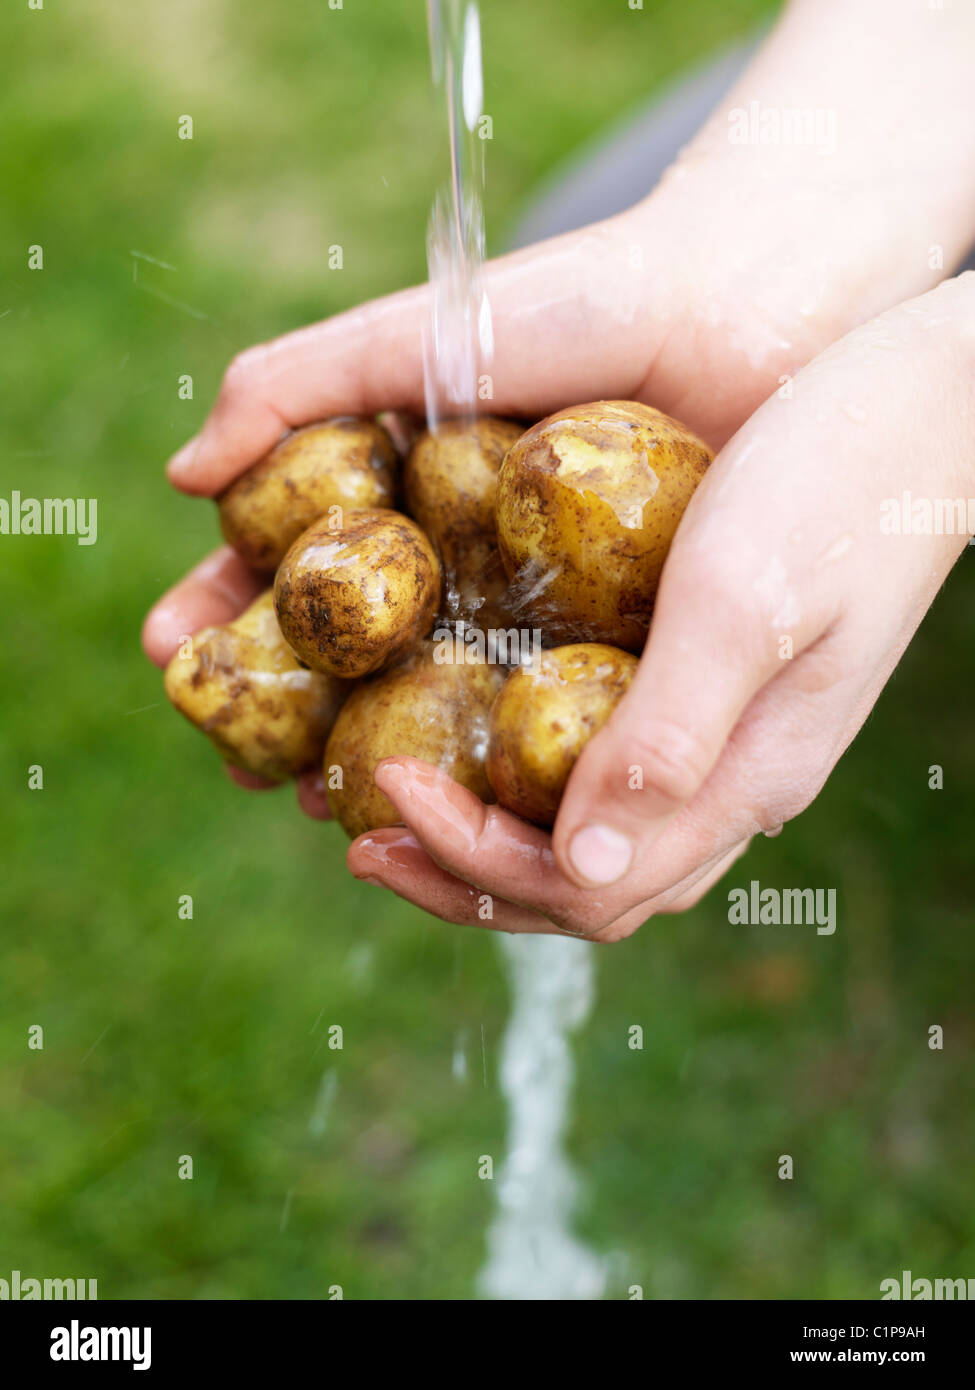 Womans hands washing potatoes under water - Stock Image